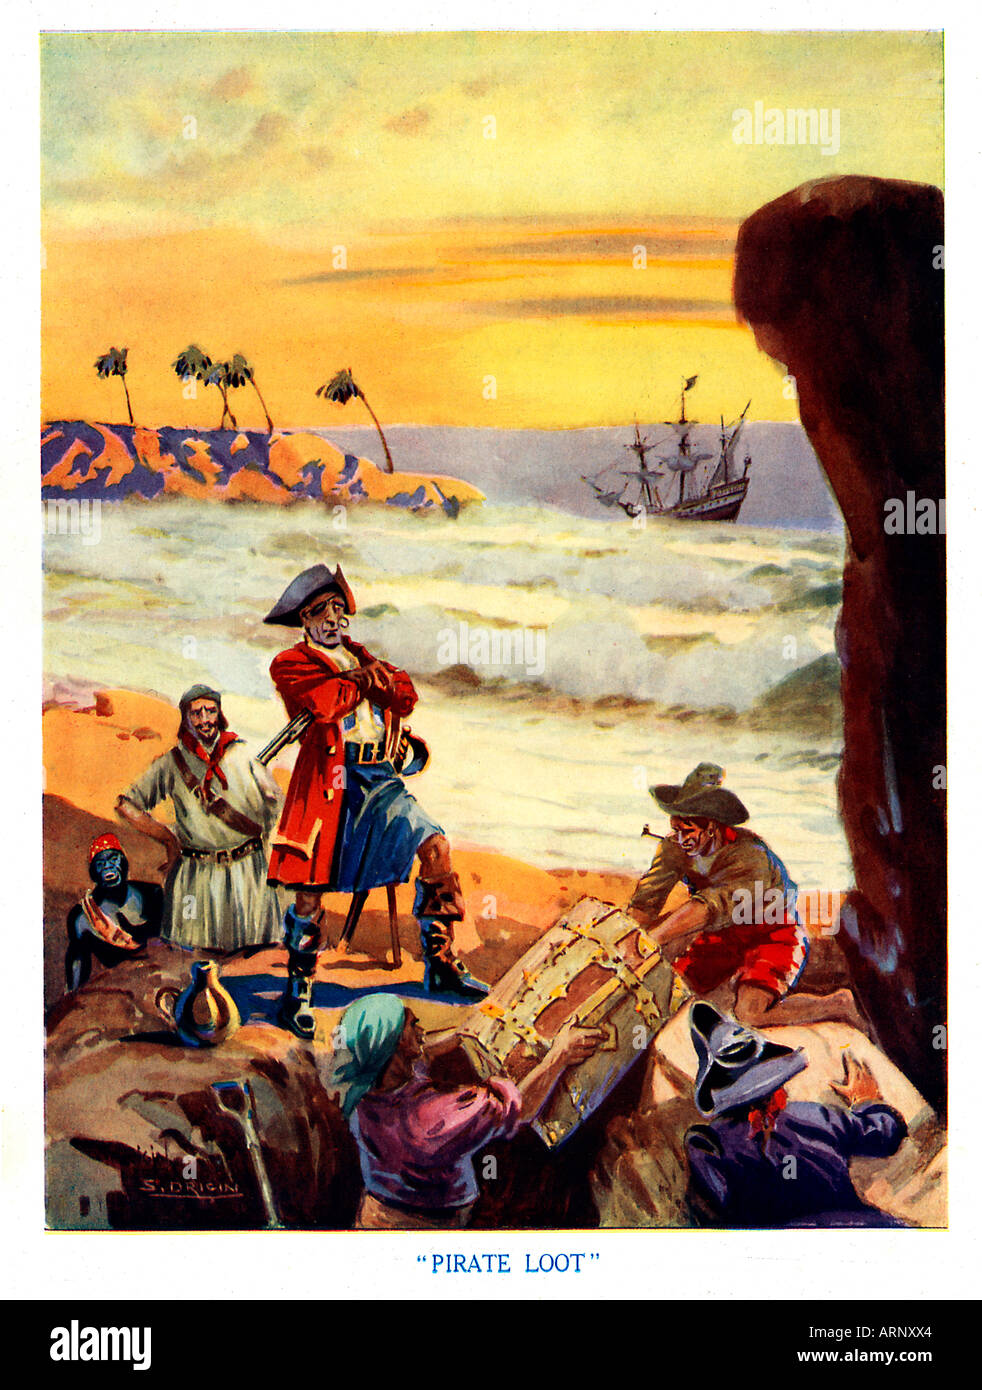 Pirate Loot 1920s boys magazine illustration of the pirates burying or perhaps digging up their treasure - Stock Image